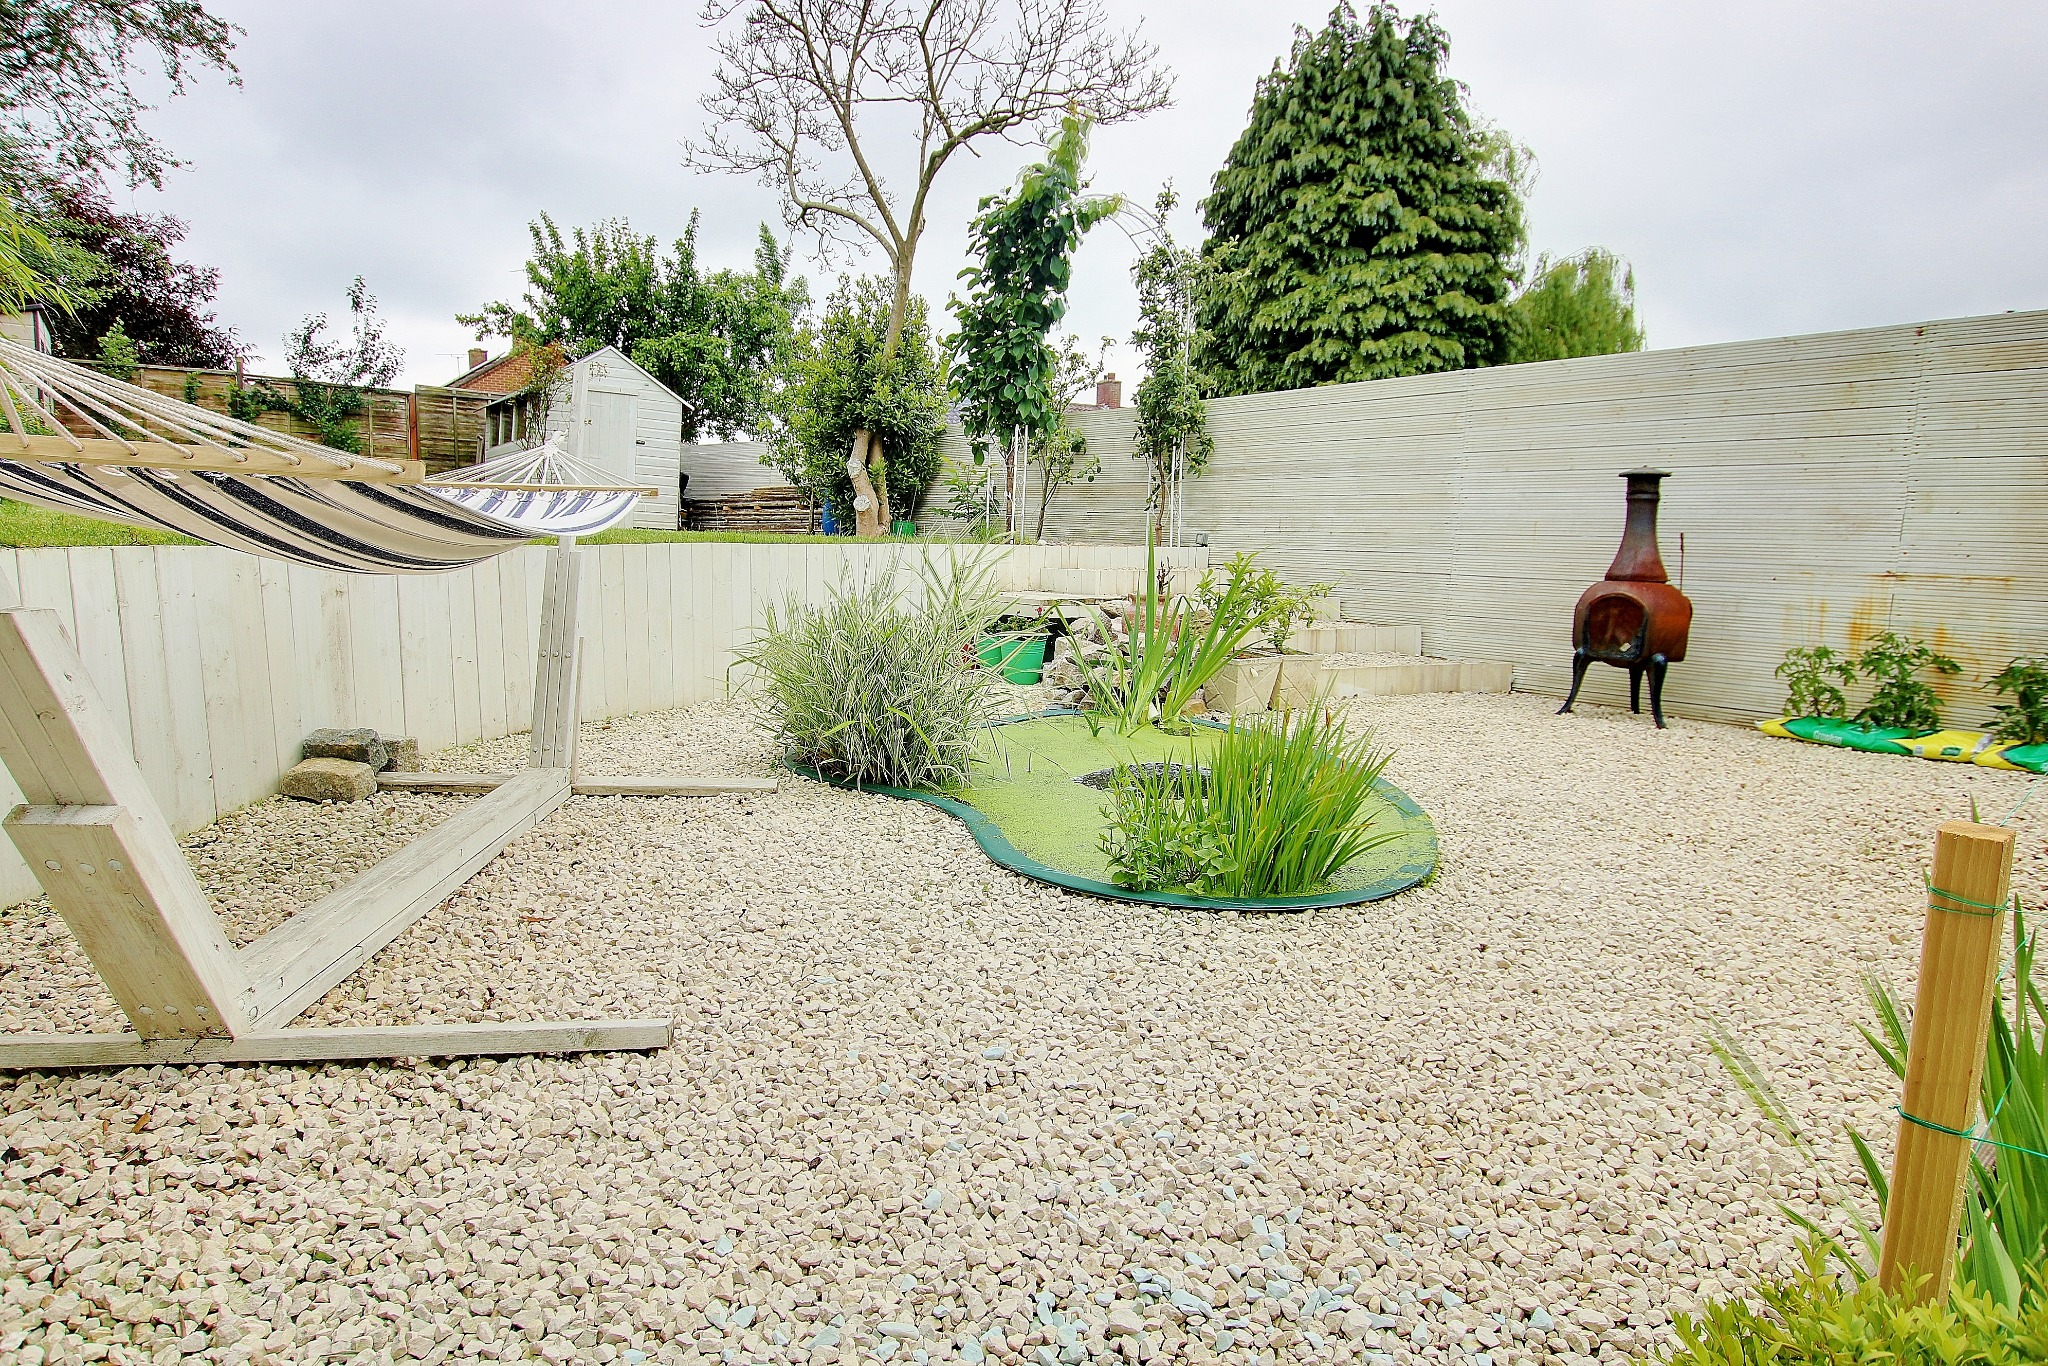 RECENTLY LANDSCAPED GARDEN! BEAUTIFUL PRESENTATION! A MUST SEE!